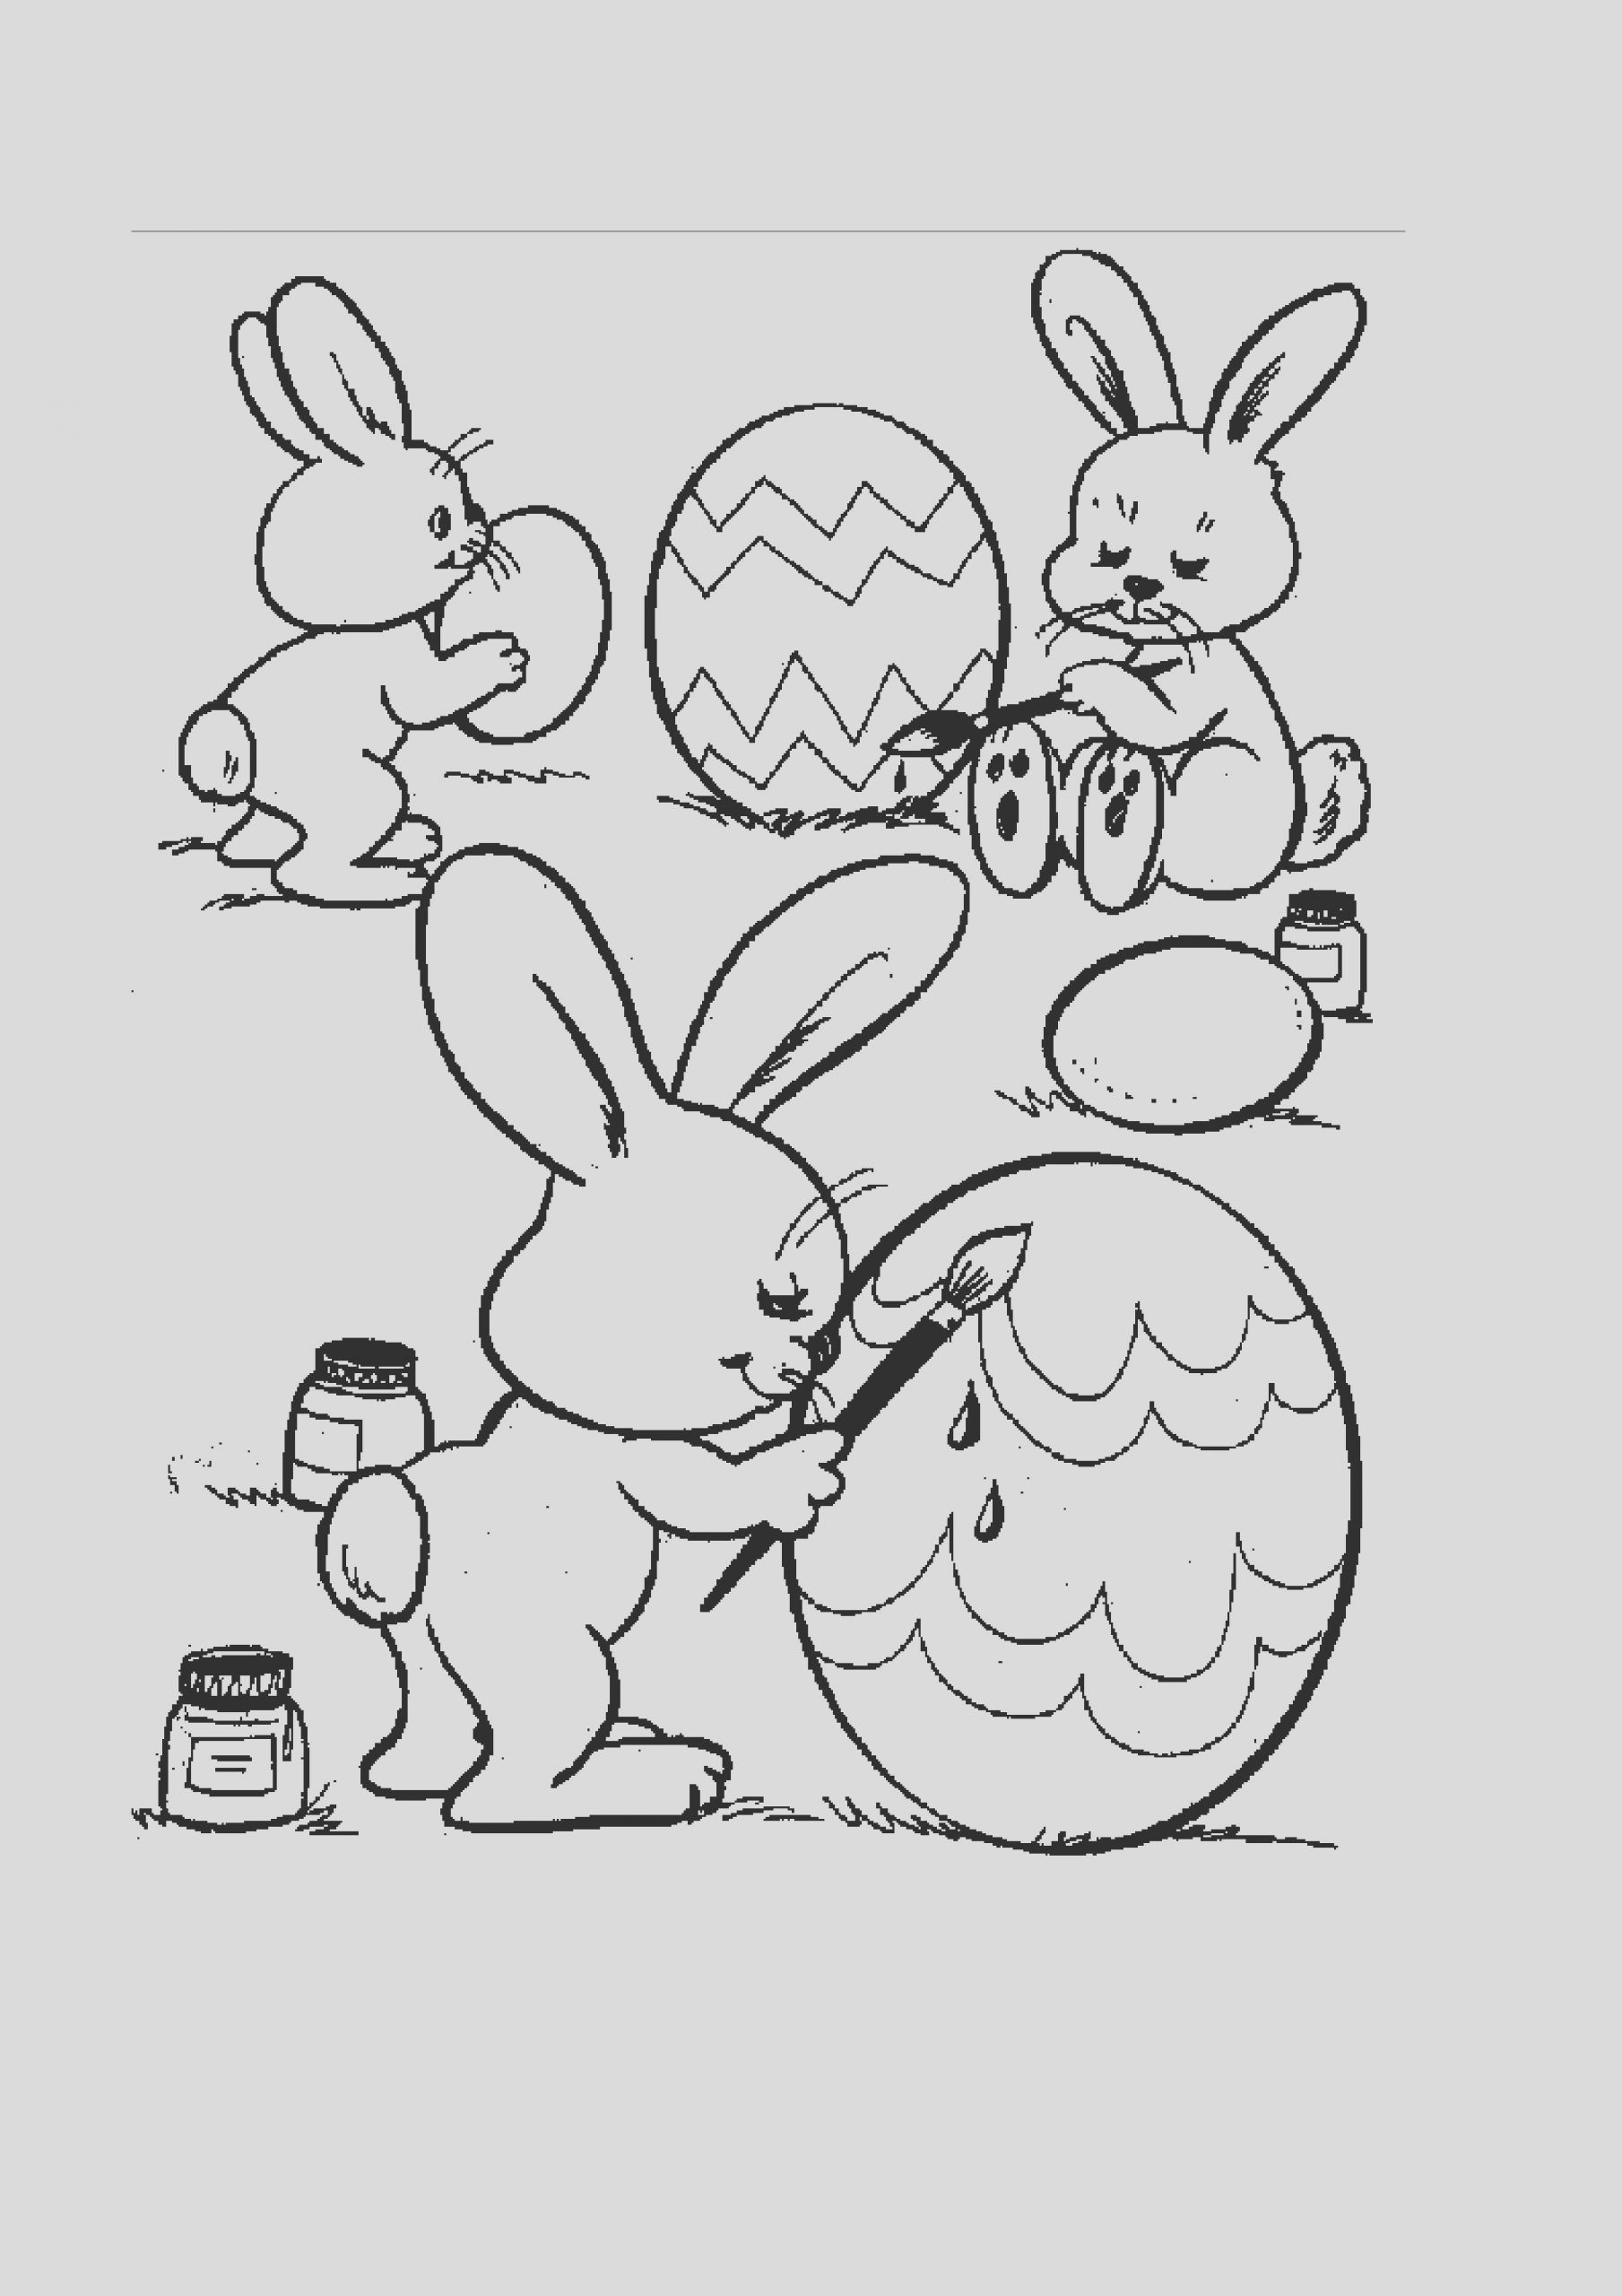 easter holiday spring coloring pages free for kids bunny chicks disney duck eggs printable book to color craft activity sheets 31